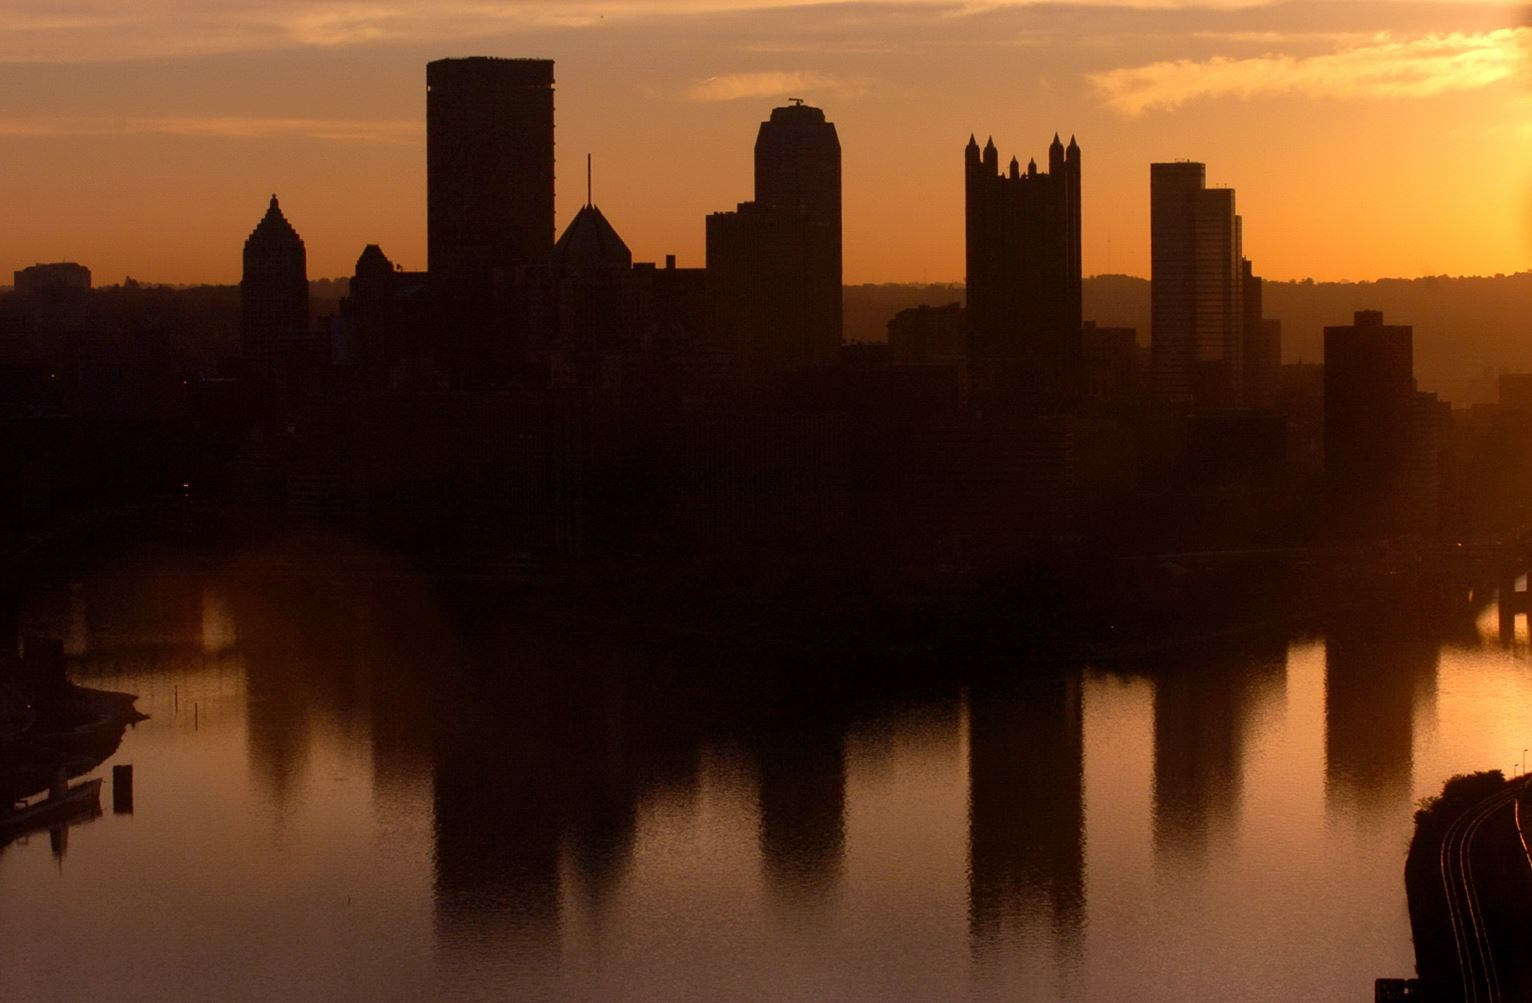 pittsburgh the most livable city Former president barack obama is a fan of america's most 'livable' city.